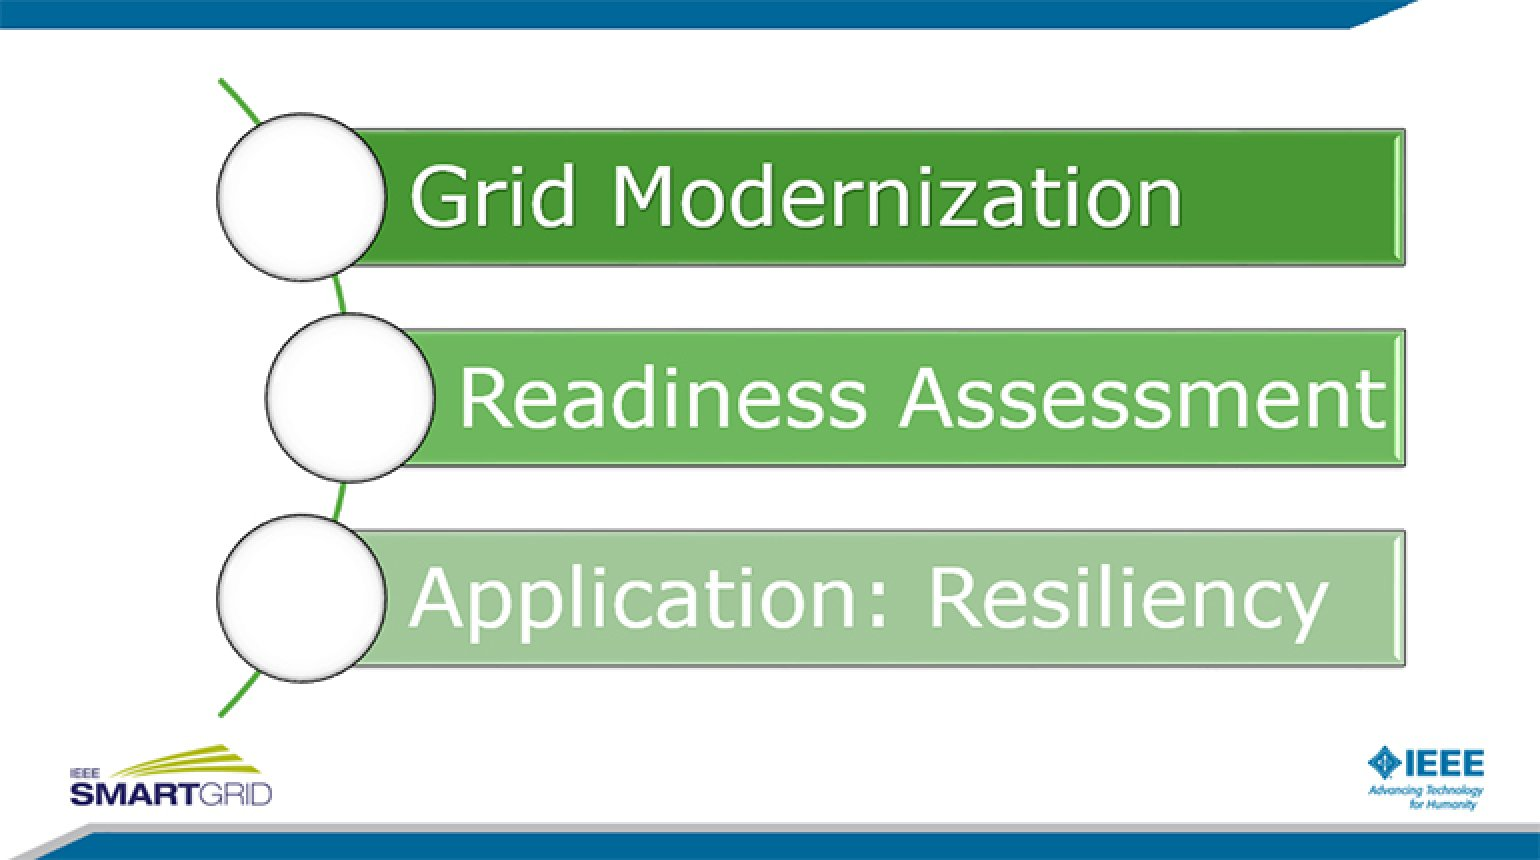 Grid Modernization and Resiliency - Frameworks and Case Studypresented by Aaron Snyder